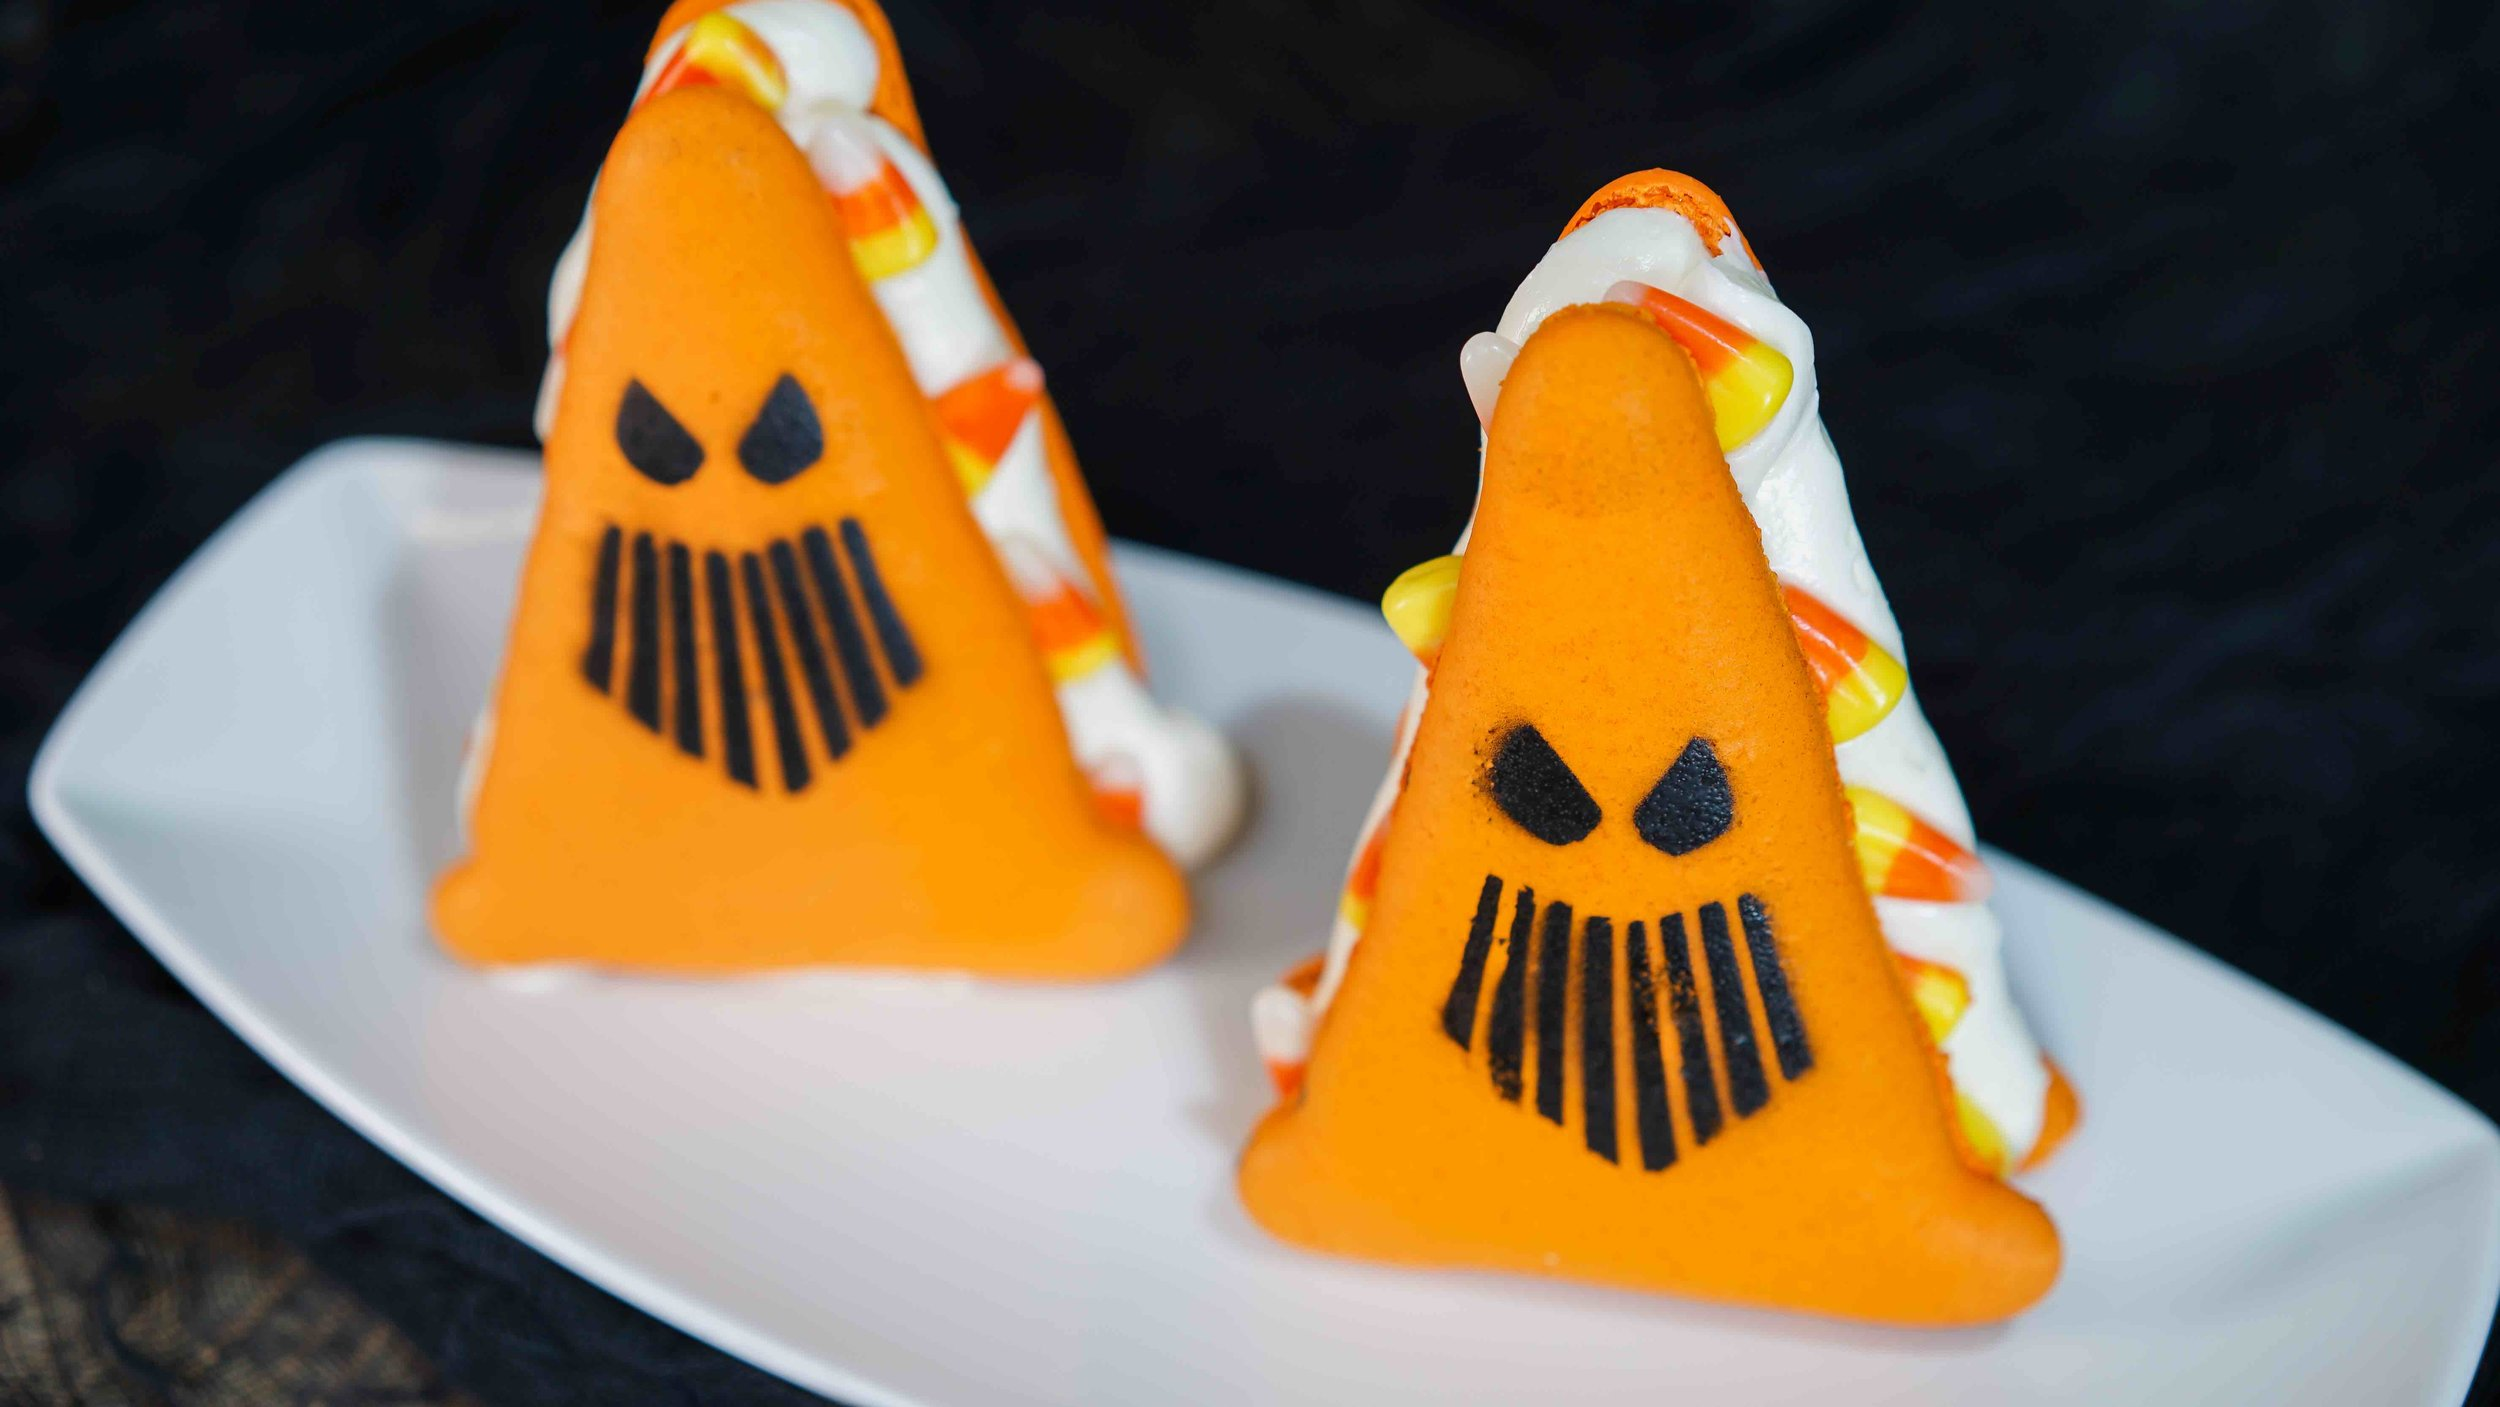 7/Treats without tricks